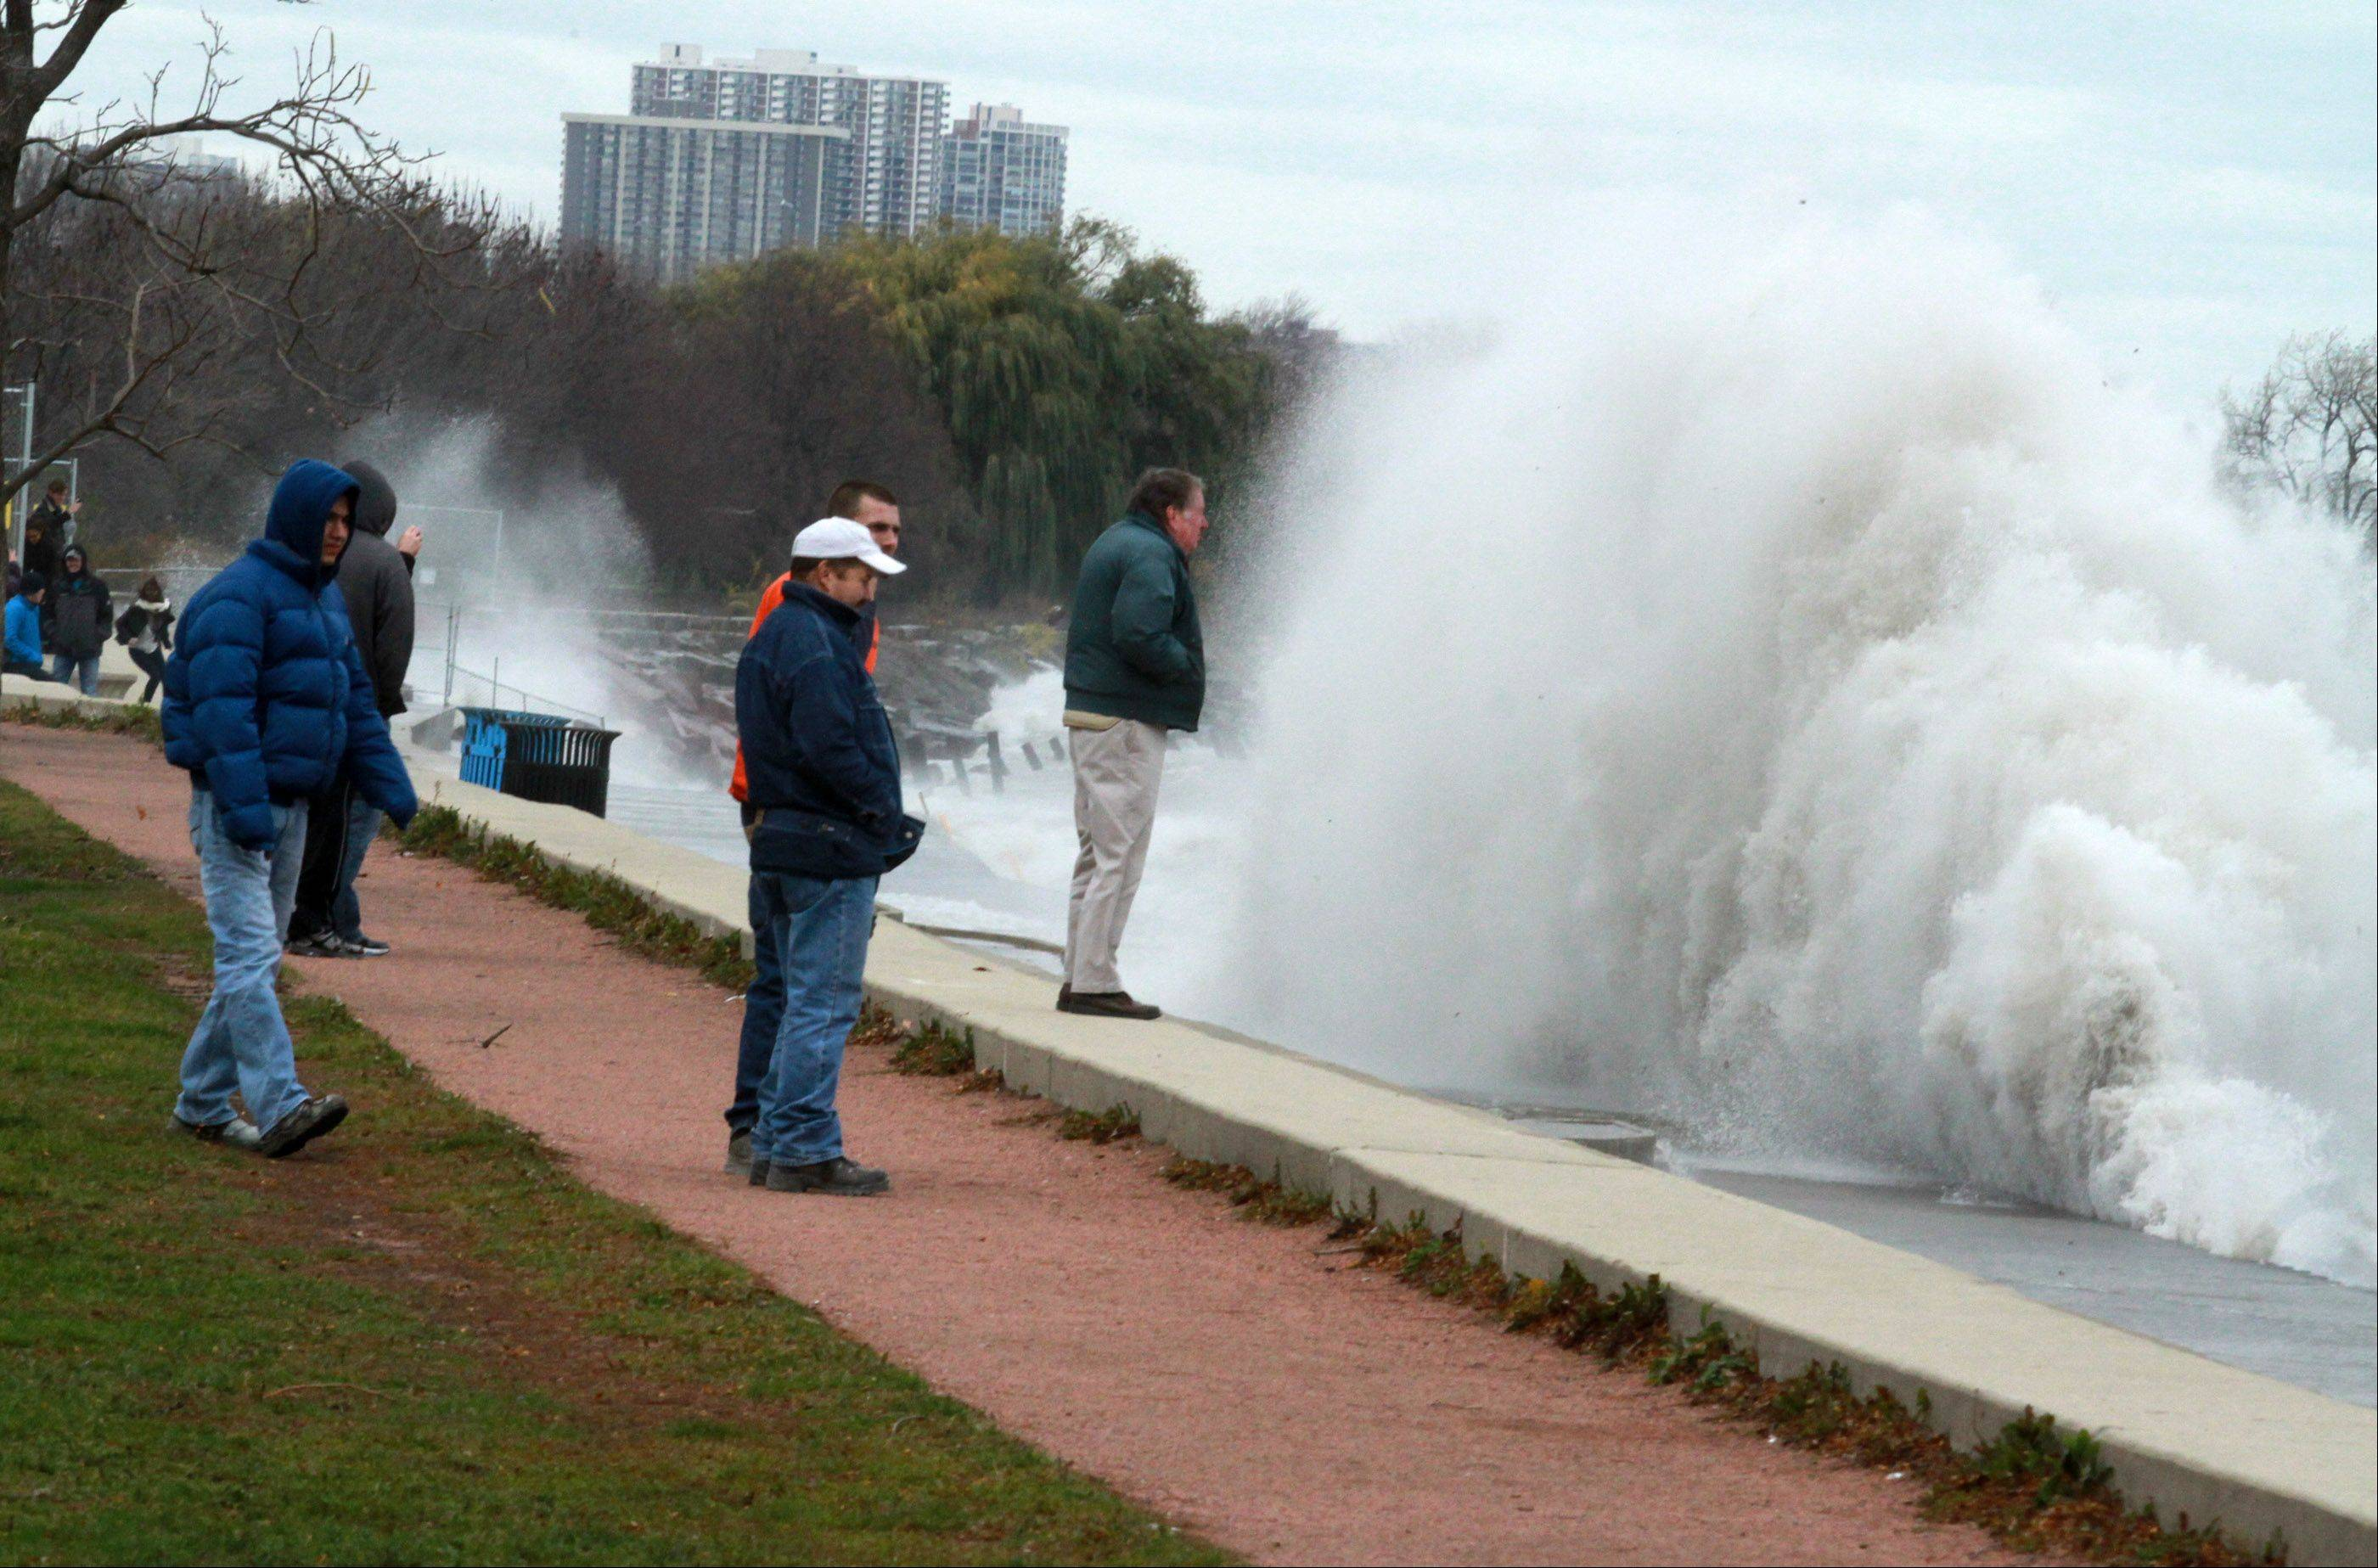 Dozens of photography enthusiast photographed waves near Sydney R. Marovitz Golf Course as giant waves batter Lake Michigan shoreline in Chicago on Tuesday, October 30.